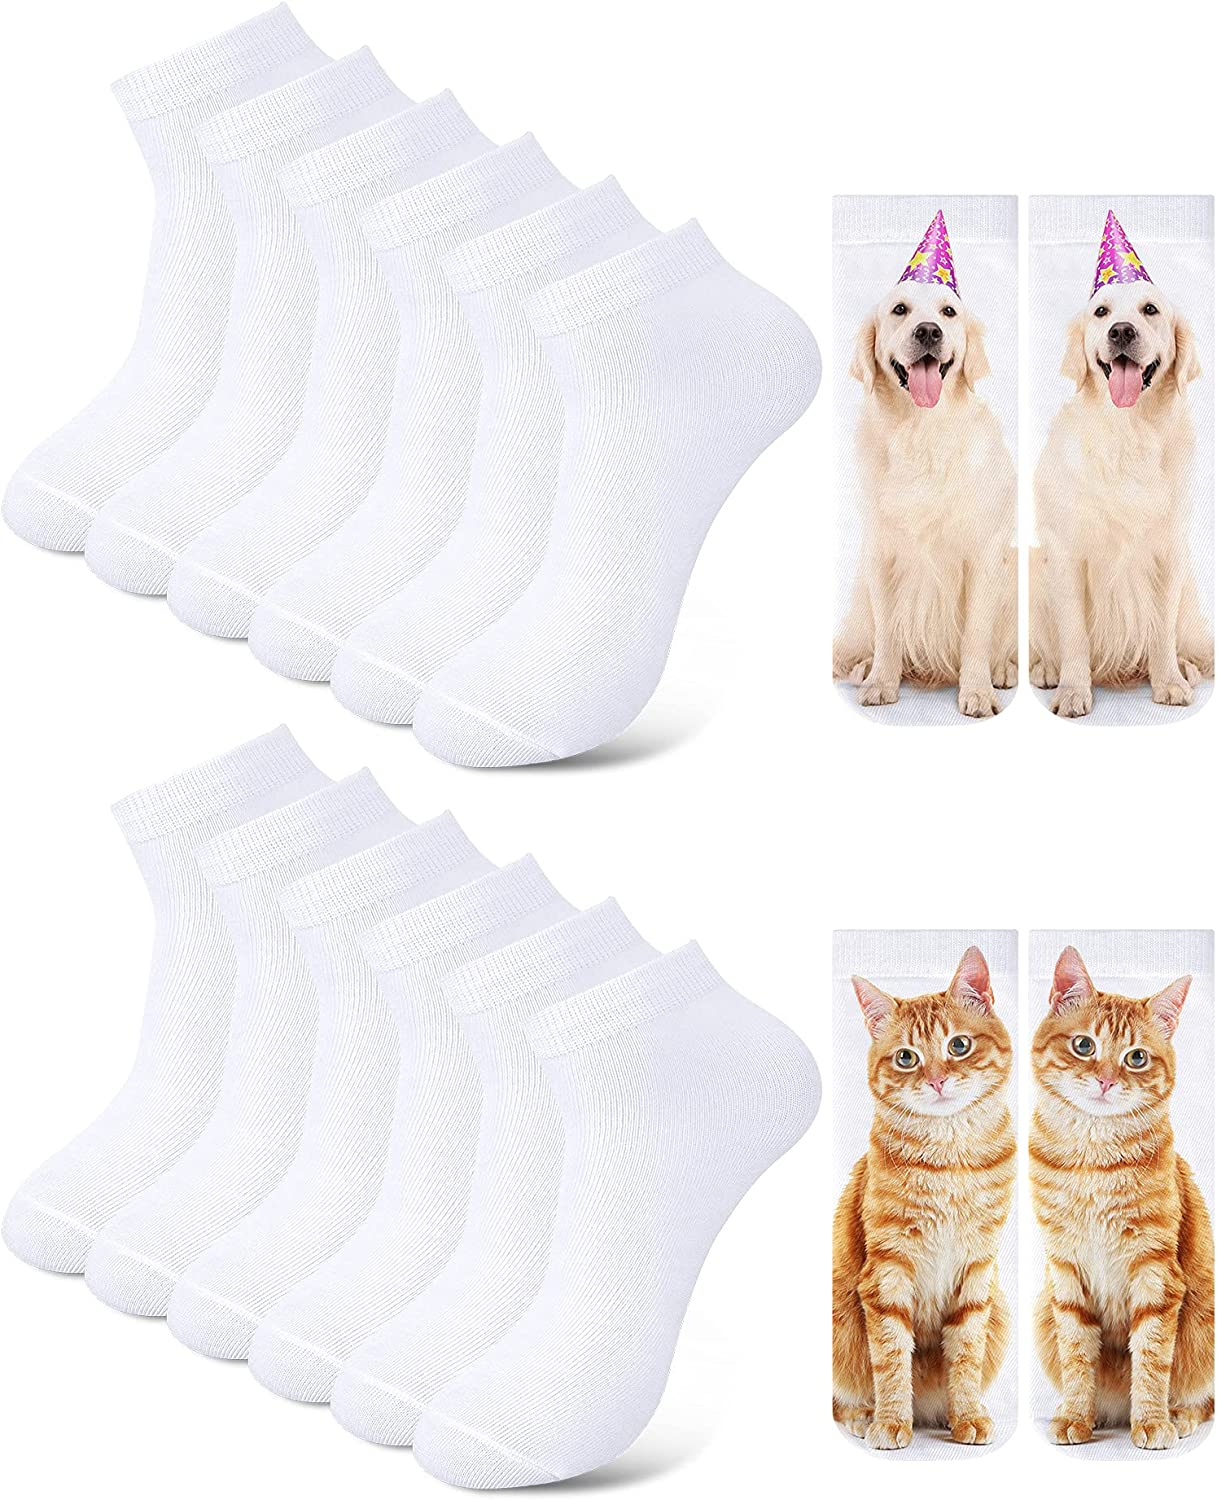 12 Pairs Blank White Sublimation Socks for DIY Personalized Socks